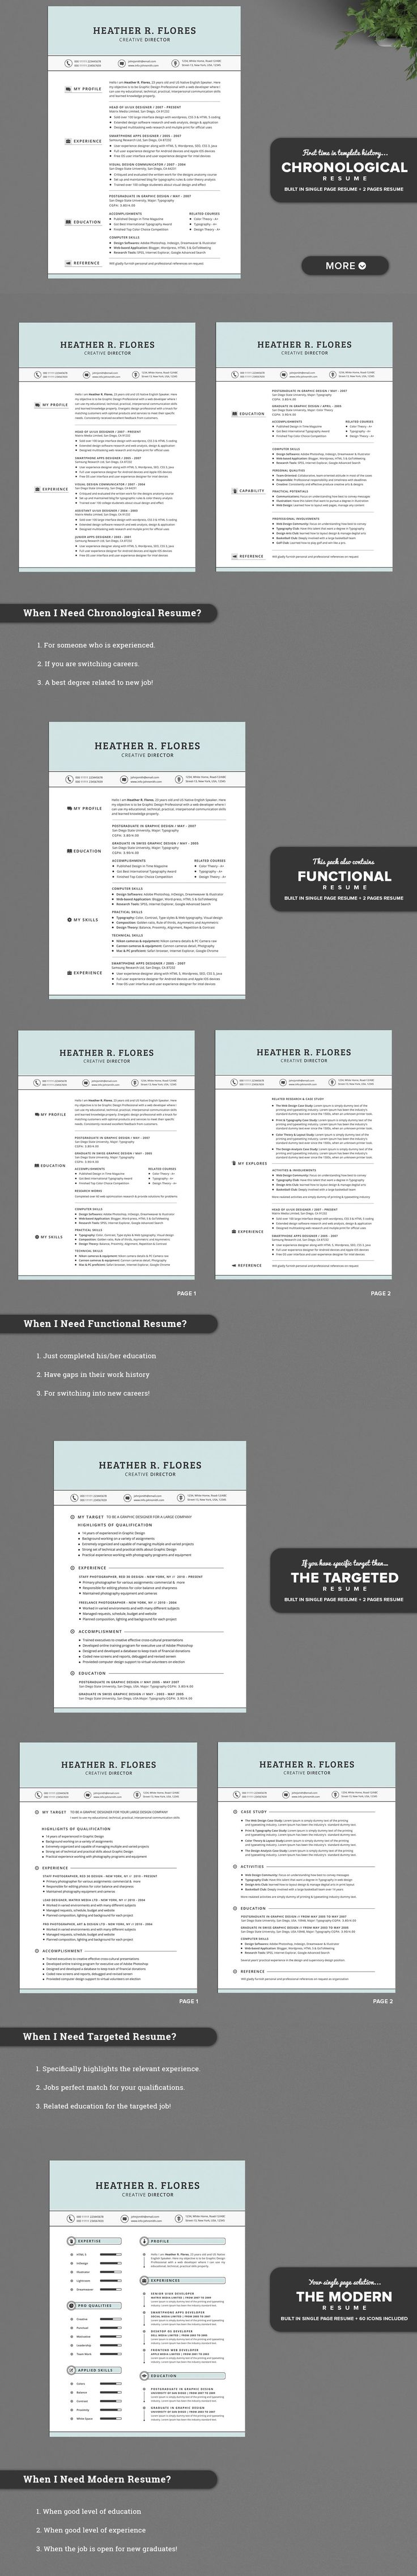 cosmetologist resume%0A    in   Timeless Resume CV Pack by SNIPESCIENTIST on Creative Market